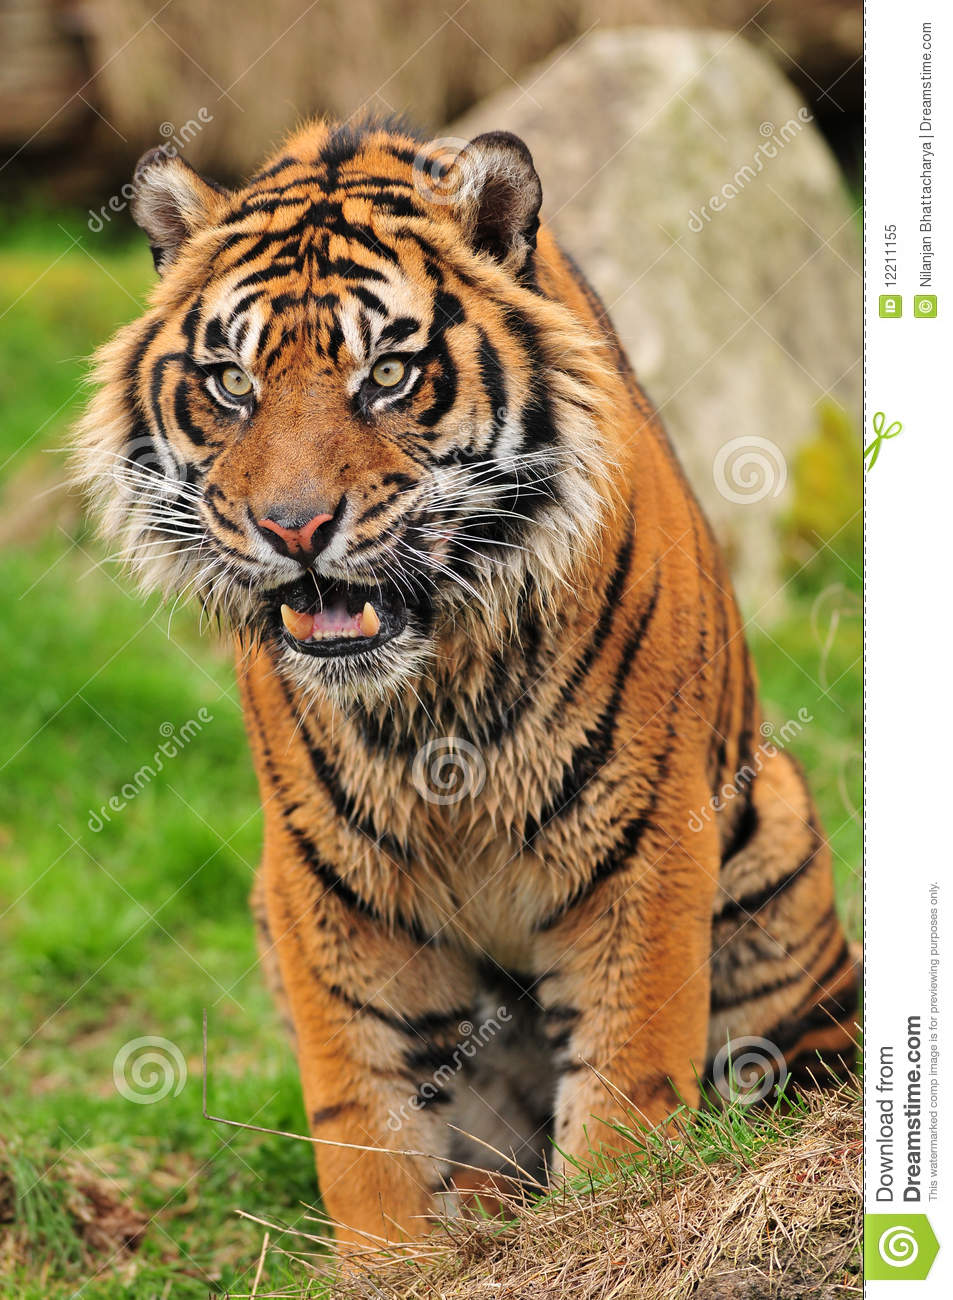 Angry tiger face close up